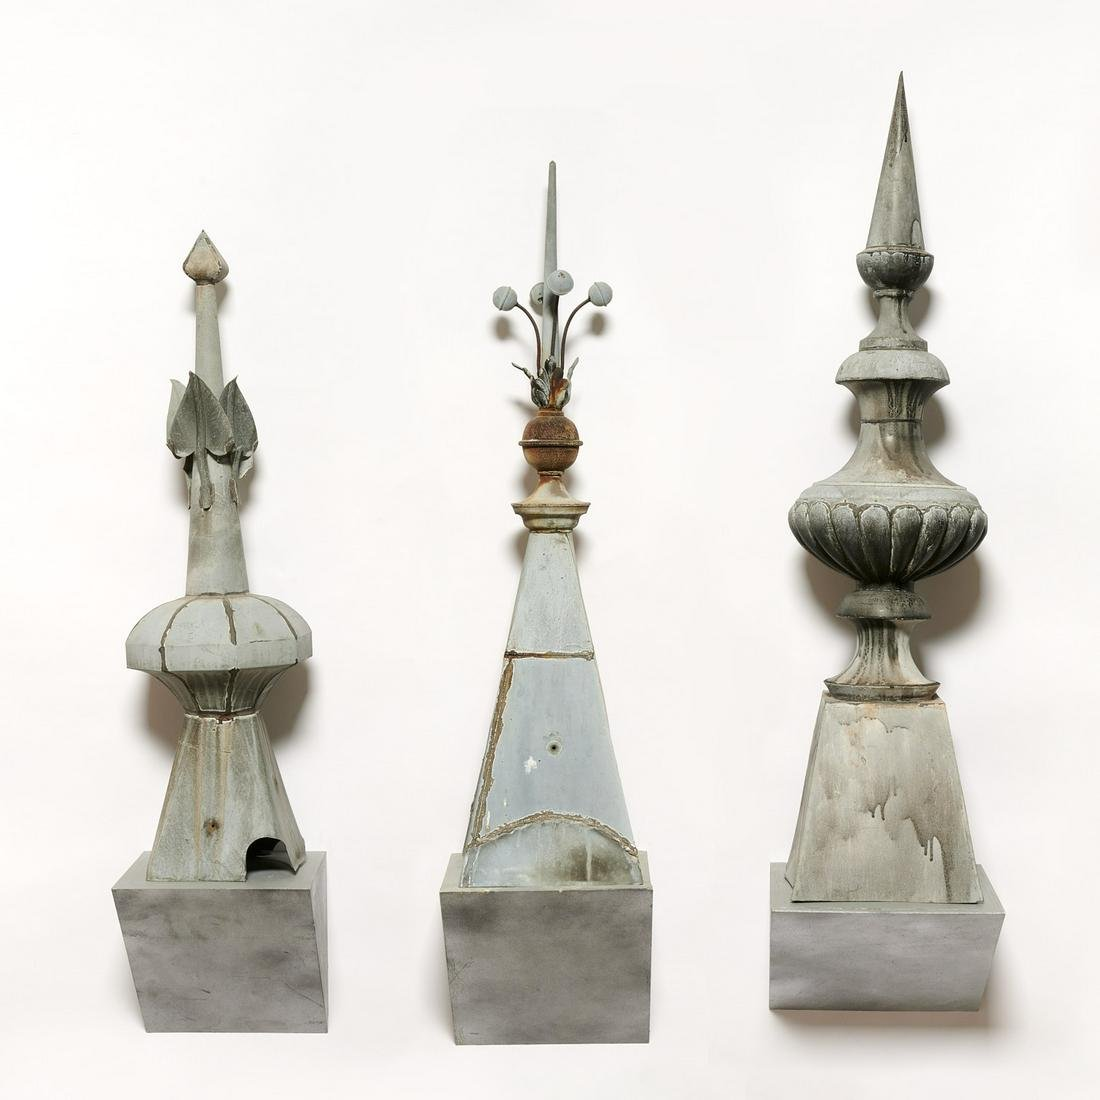 (3) French zinc architectural roof finial spires